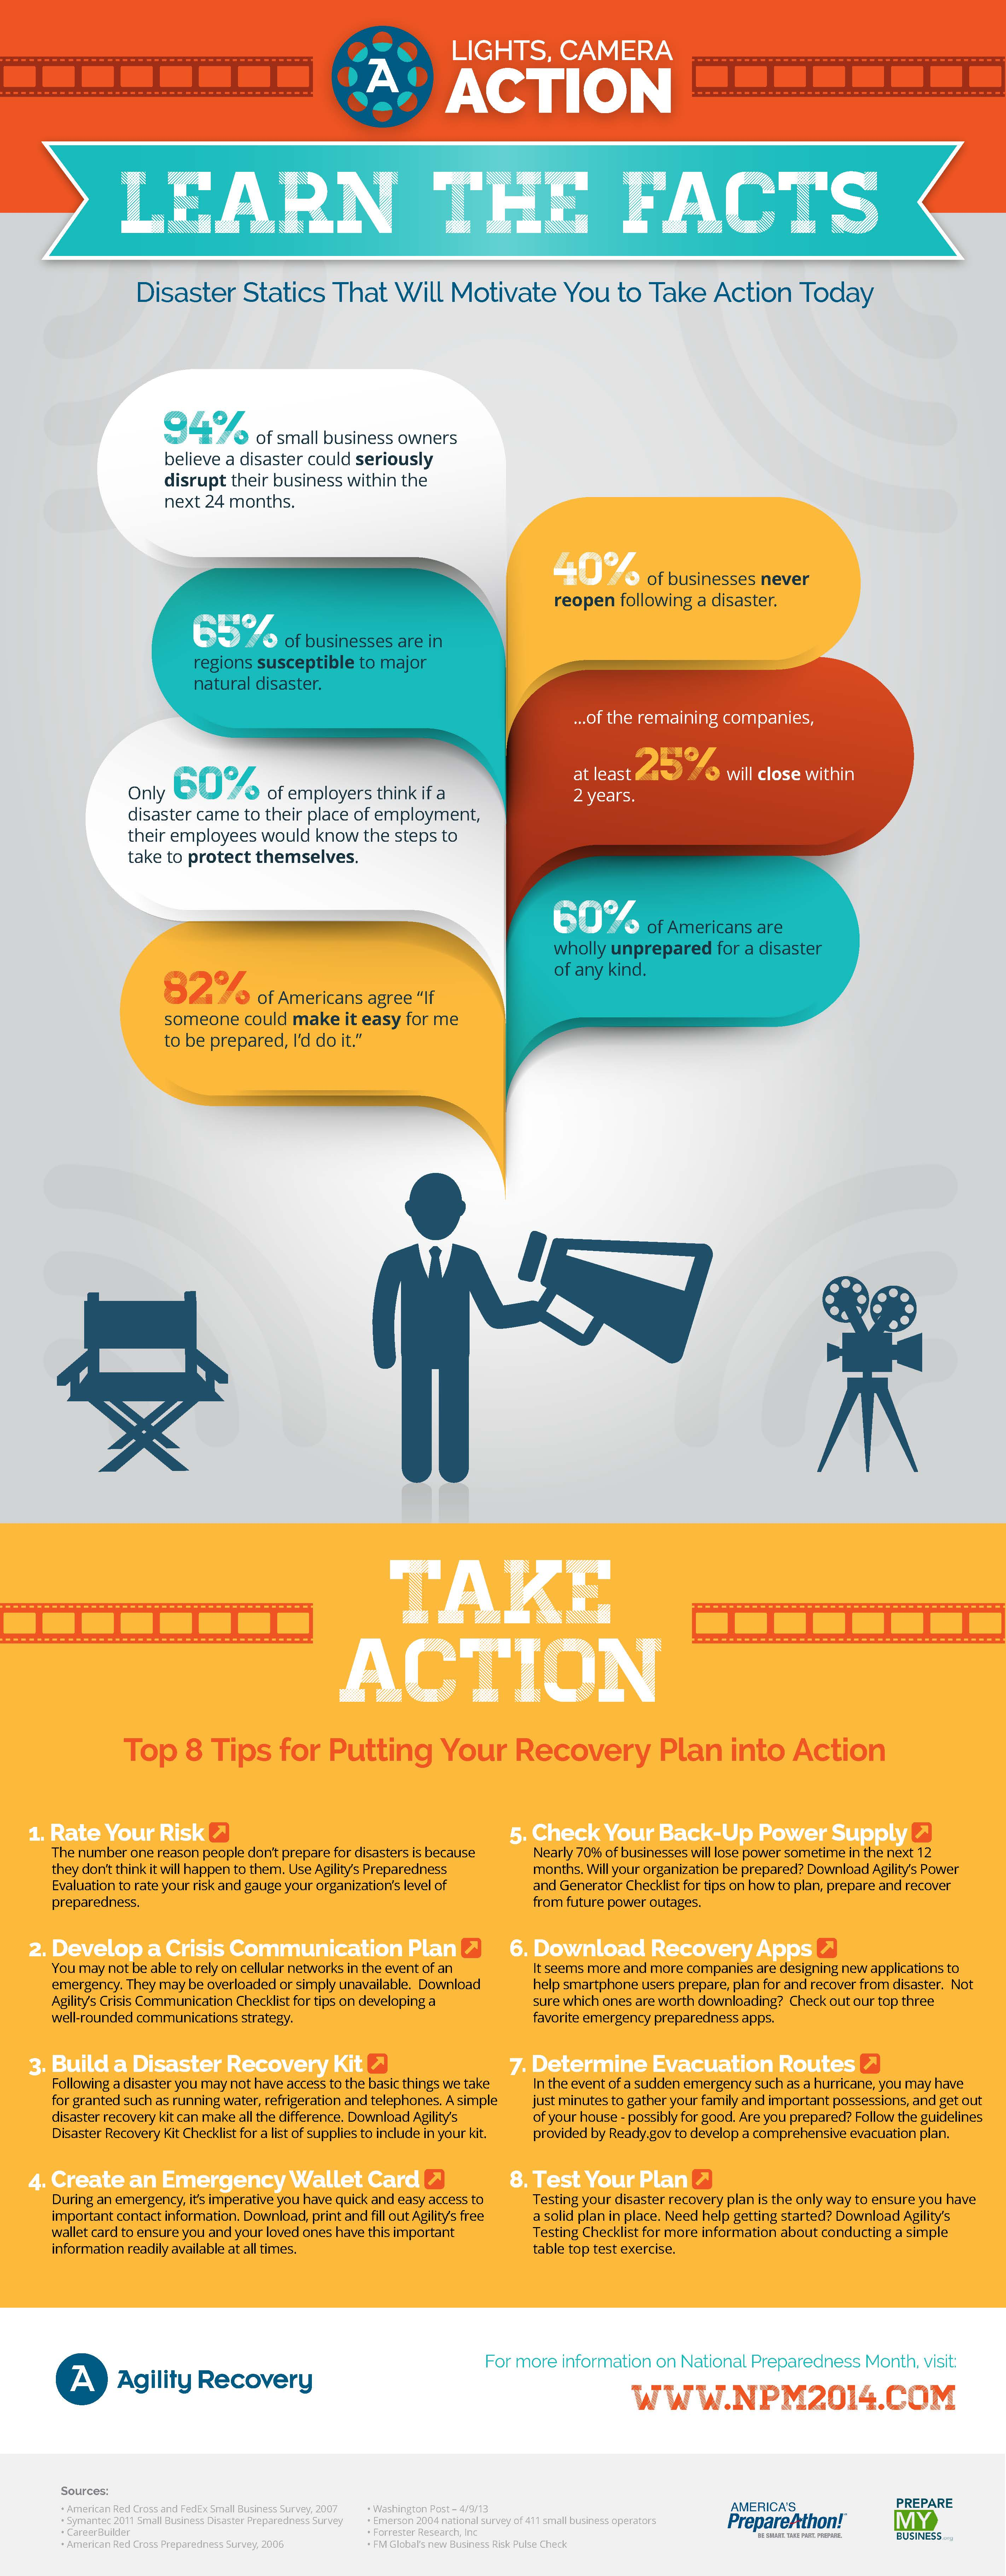 8 Tips for Putting Your DR Plan into Action [Infographic] - Featured Image